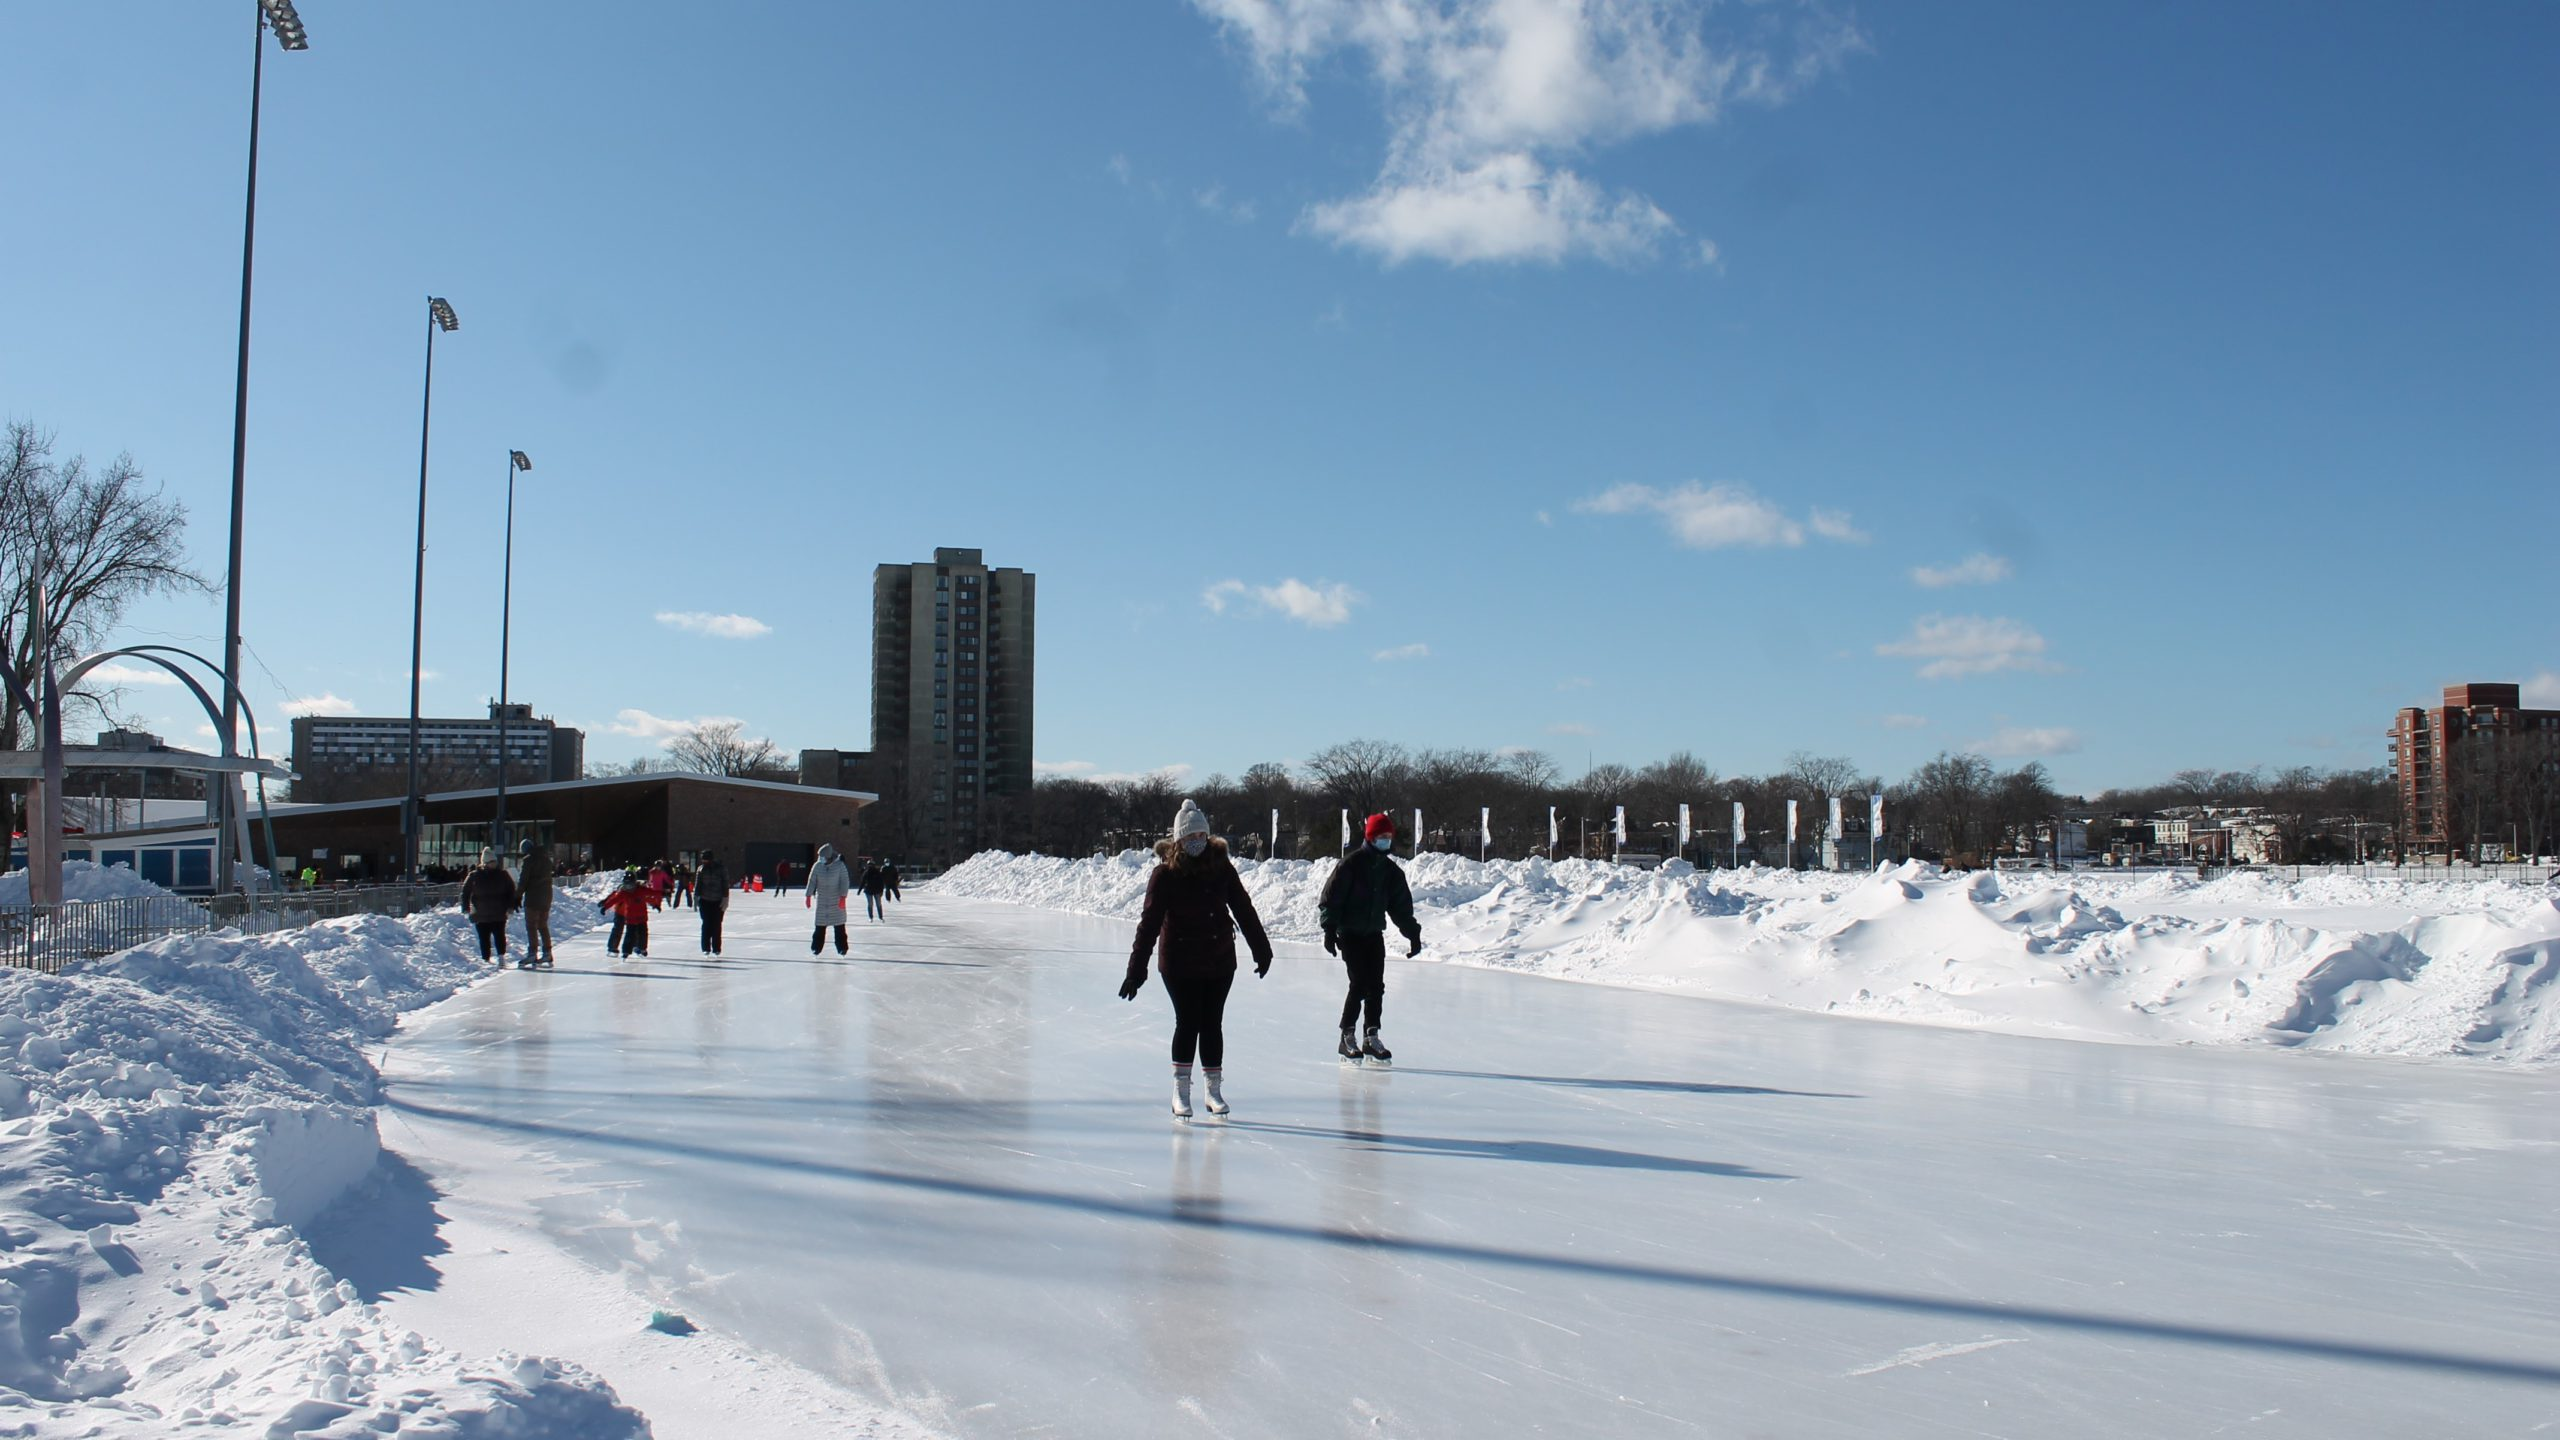 As of Monday, 300 people will be allowed to skate at once on the Emera Oval.